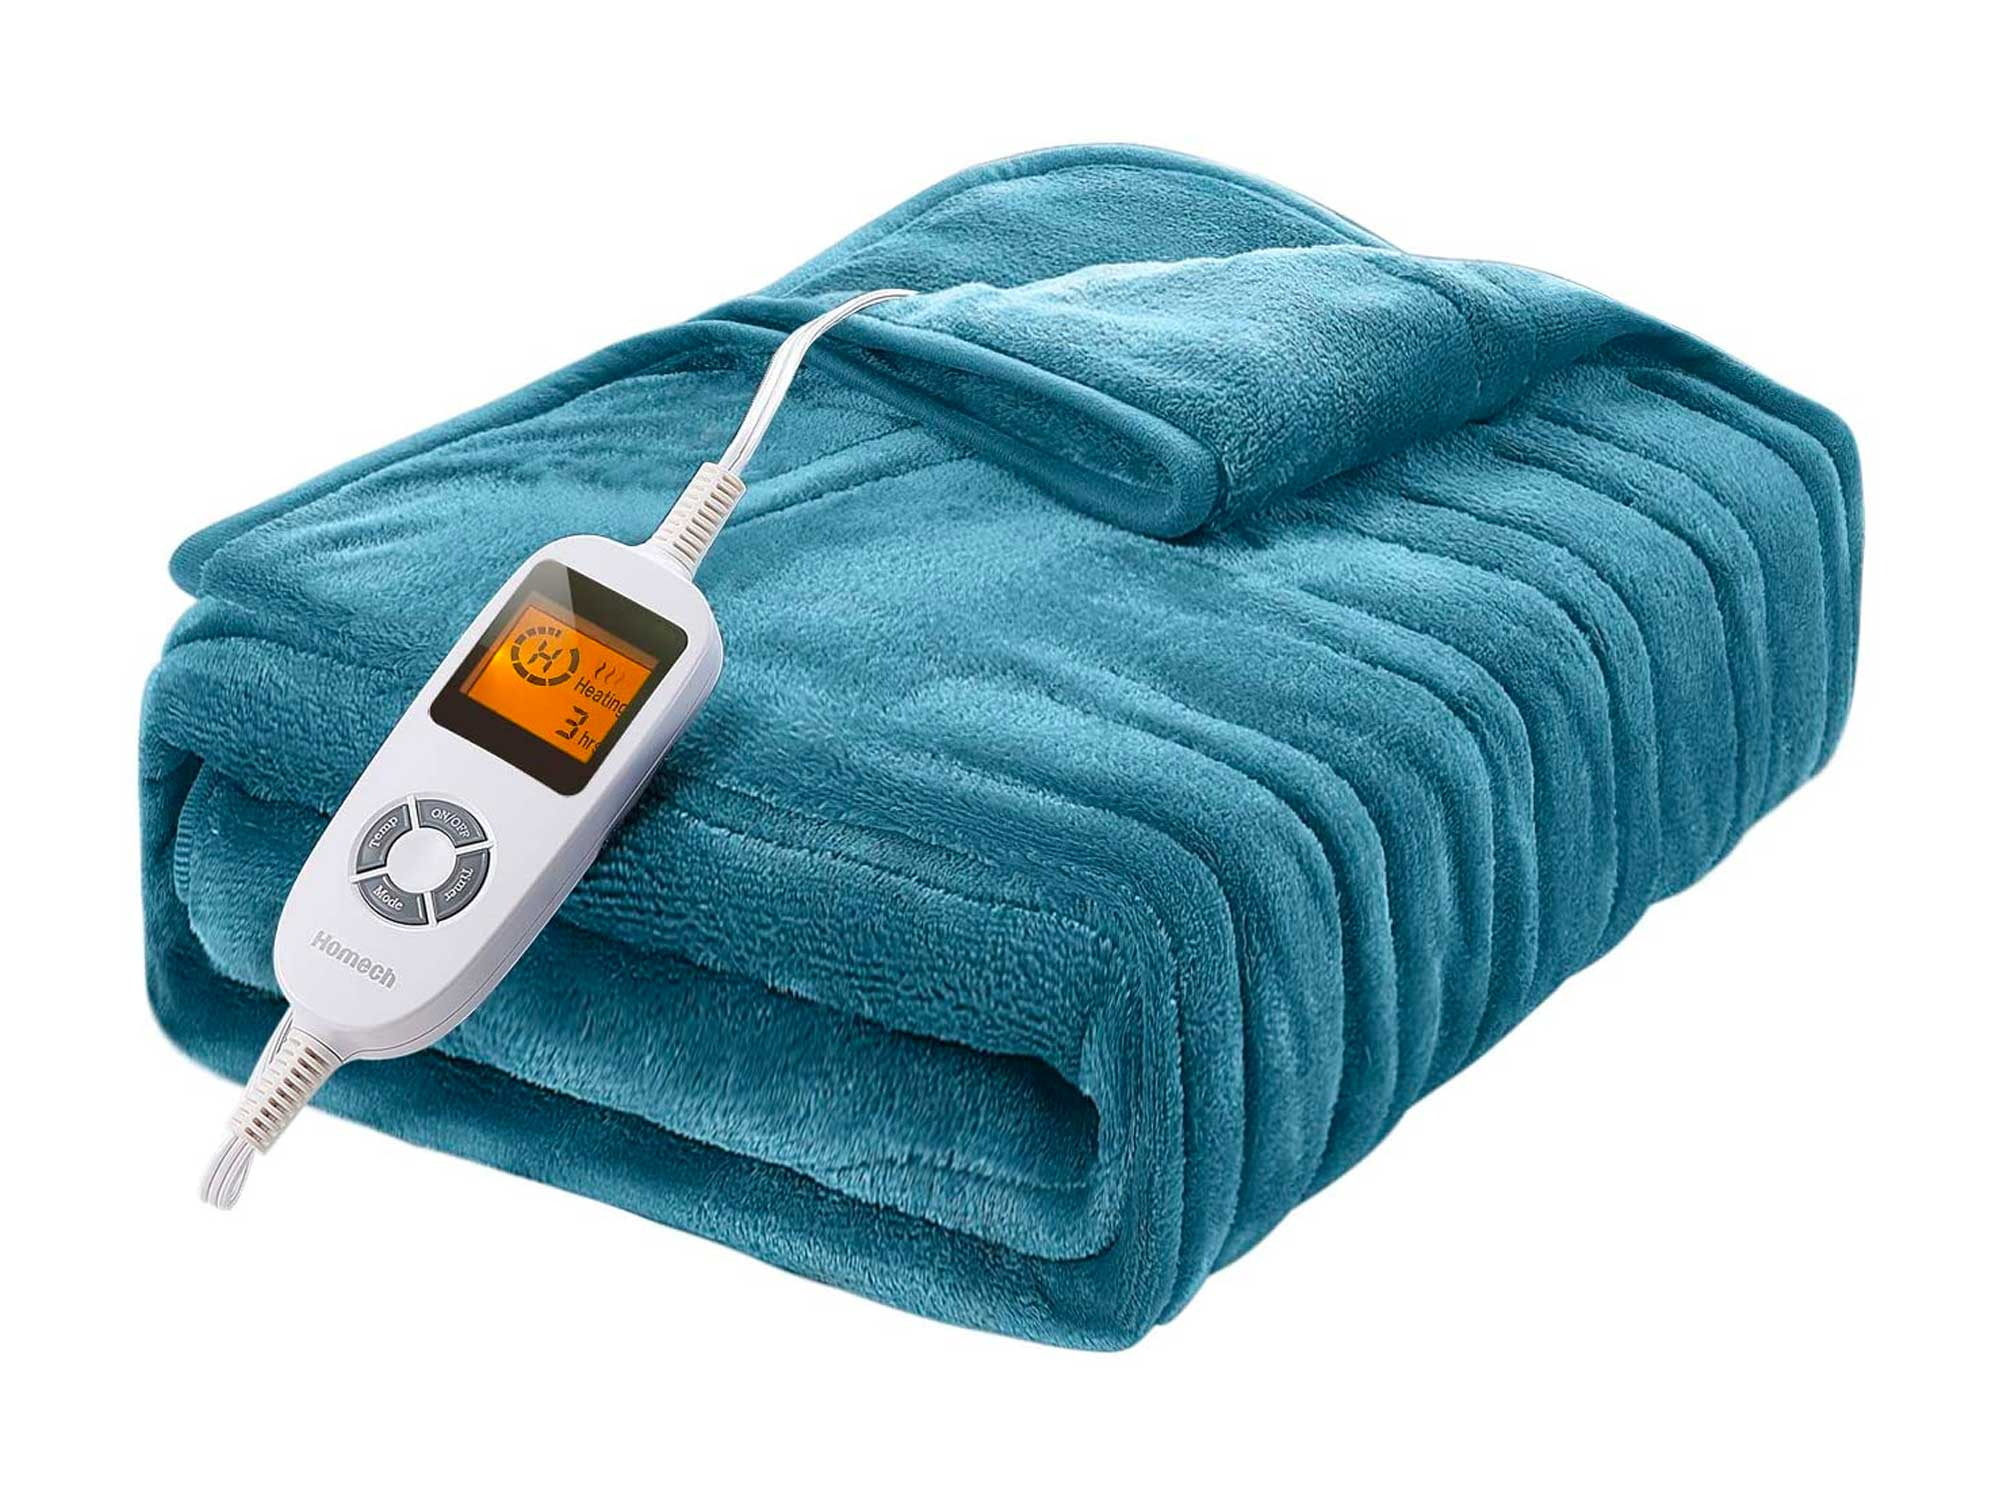 Homech Electric Heated Blankets, Electric Throws with Double-Layer Flannel, 10 Heating Levels, 3 Hours Auto-Off, Fast Heat & ETL Certification, Home Office Use & Machine Washable